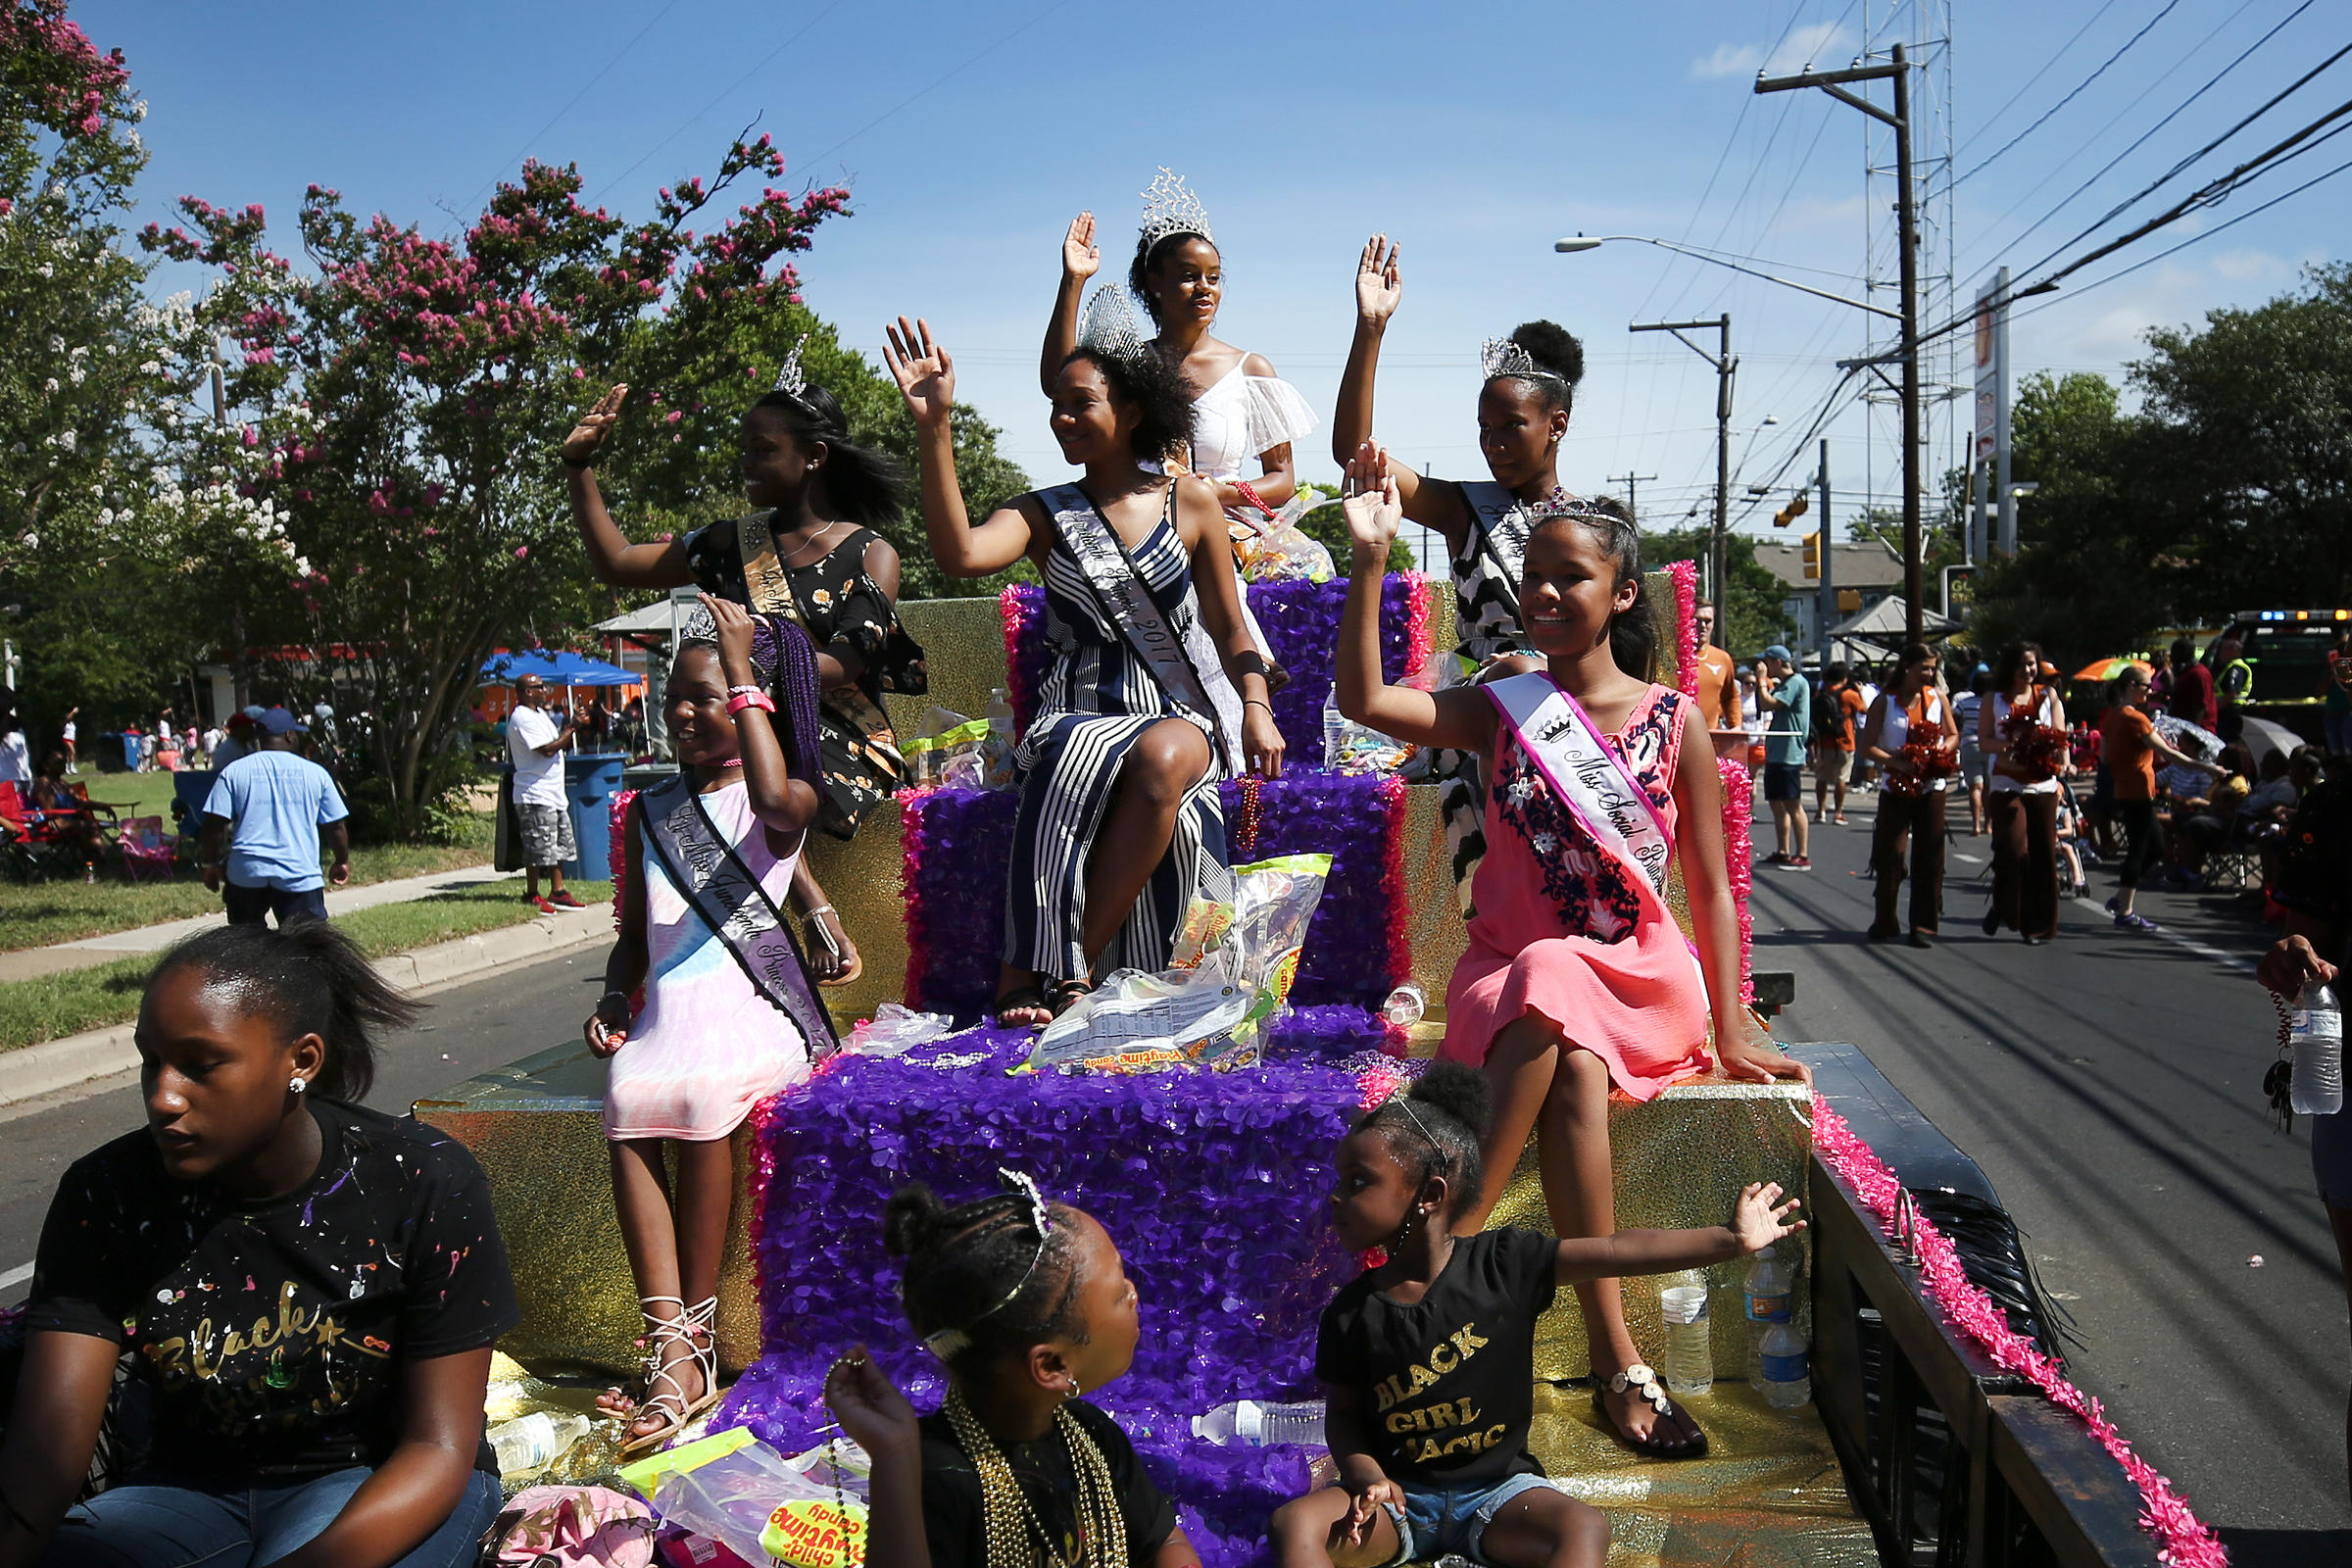 Guam's black professional organizations unite for Juneteenth event